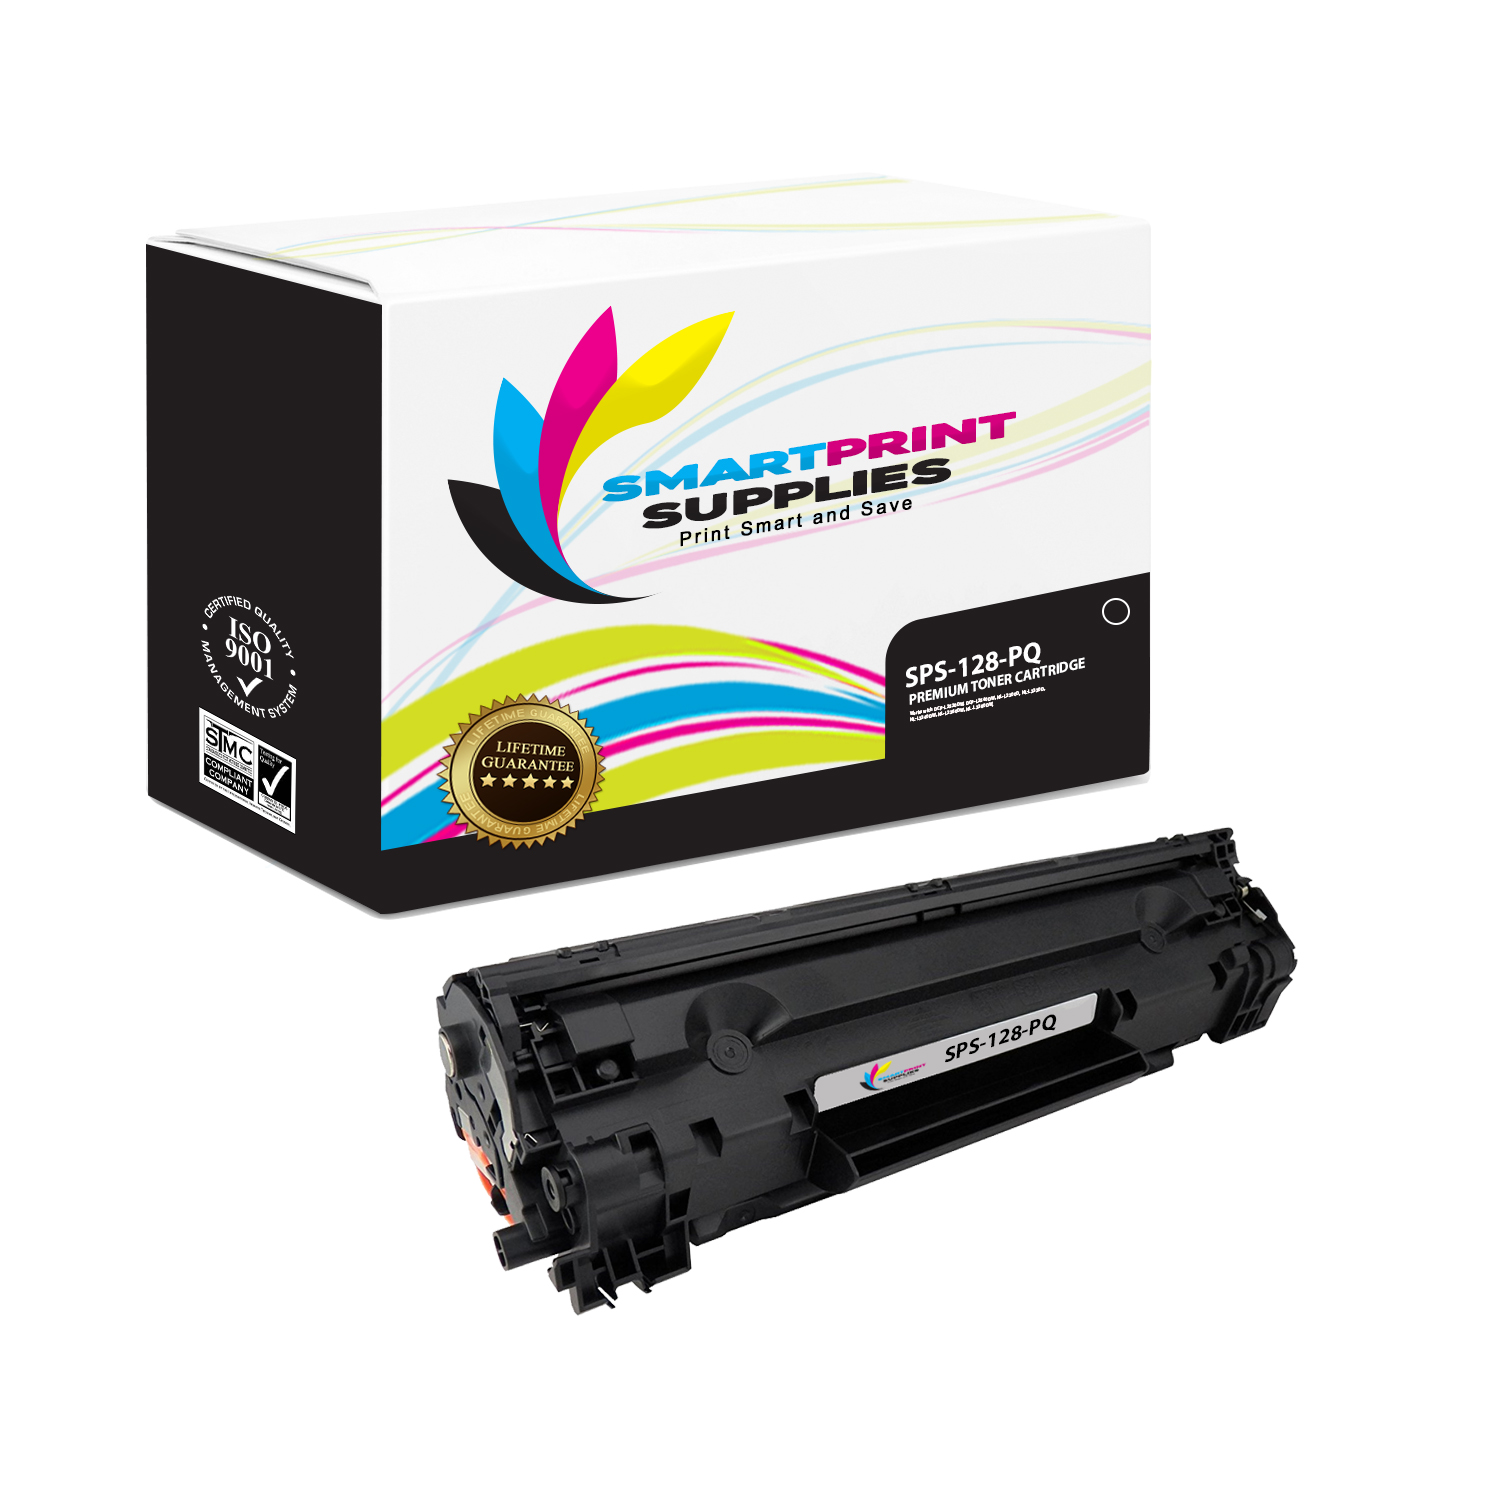 USA Advantage Compatible Toner Cartridge Replacement for Canon 128 Black,1 Pack 3500B001AA for Use with ImageClass MF4580dn